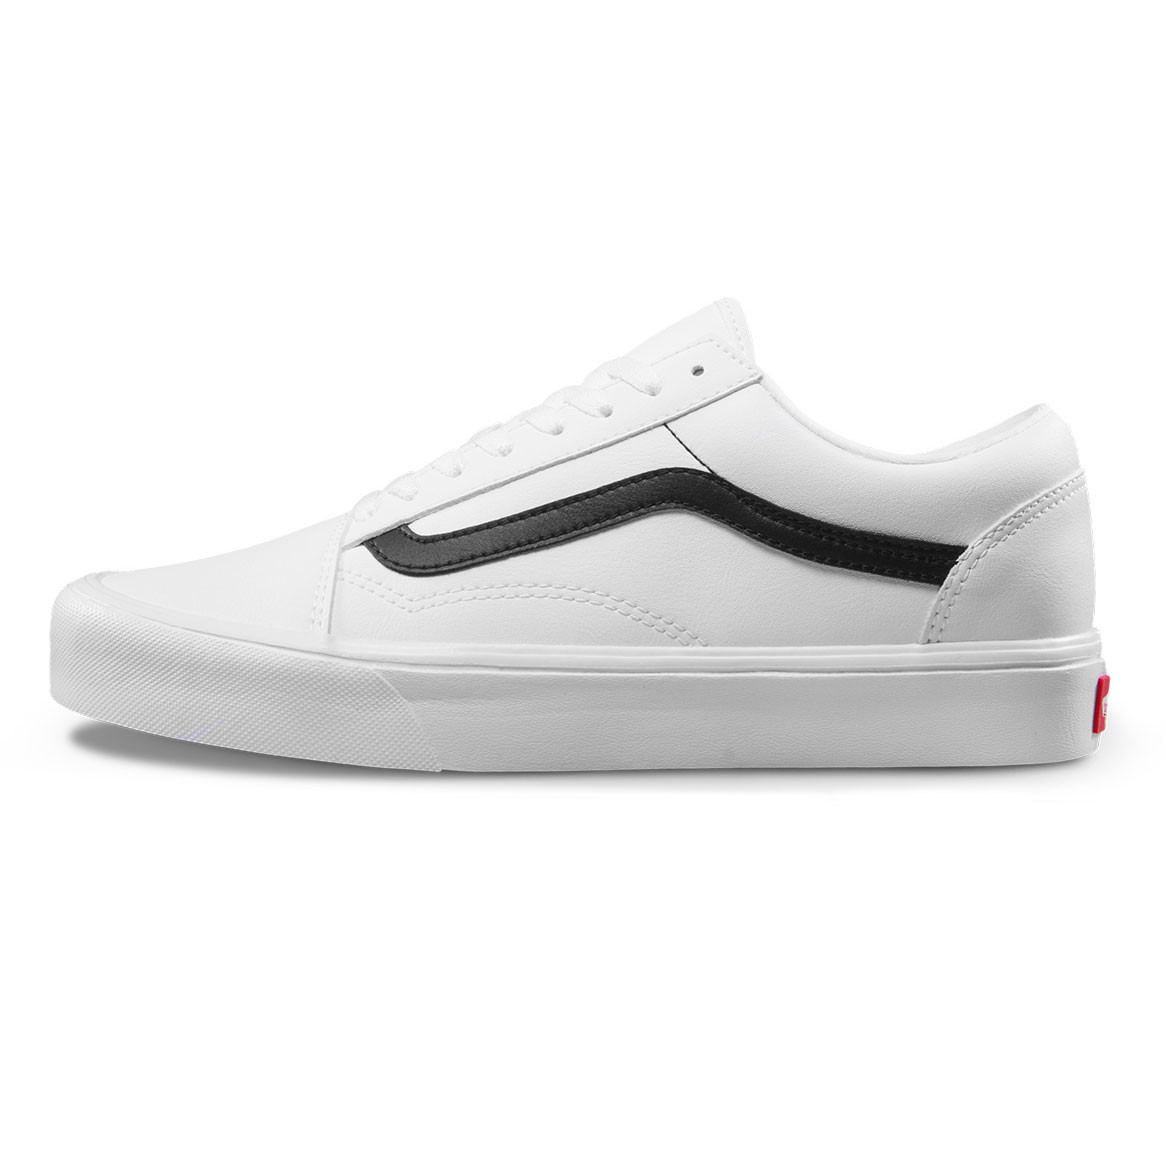 d8d992a5c62 Tenisky Vans Old Skool Lite classic tumble true white black ...